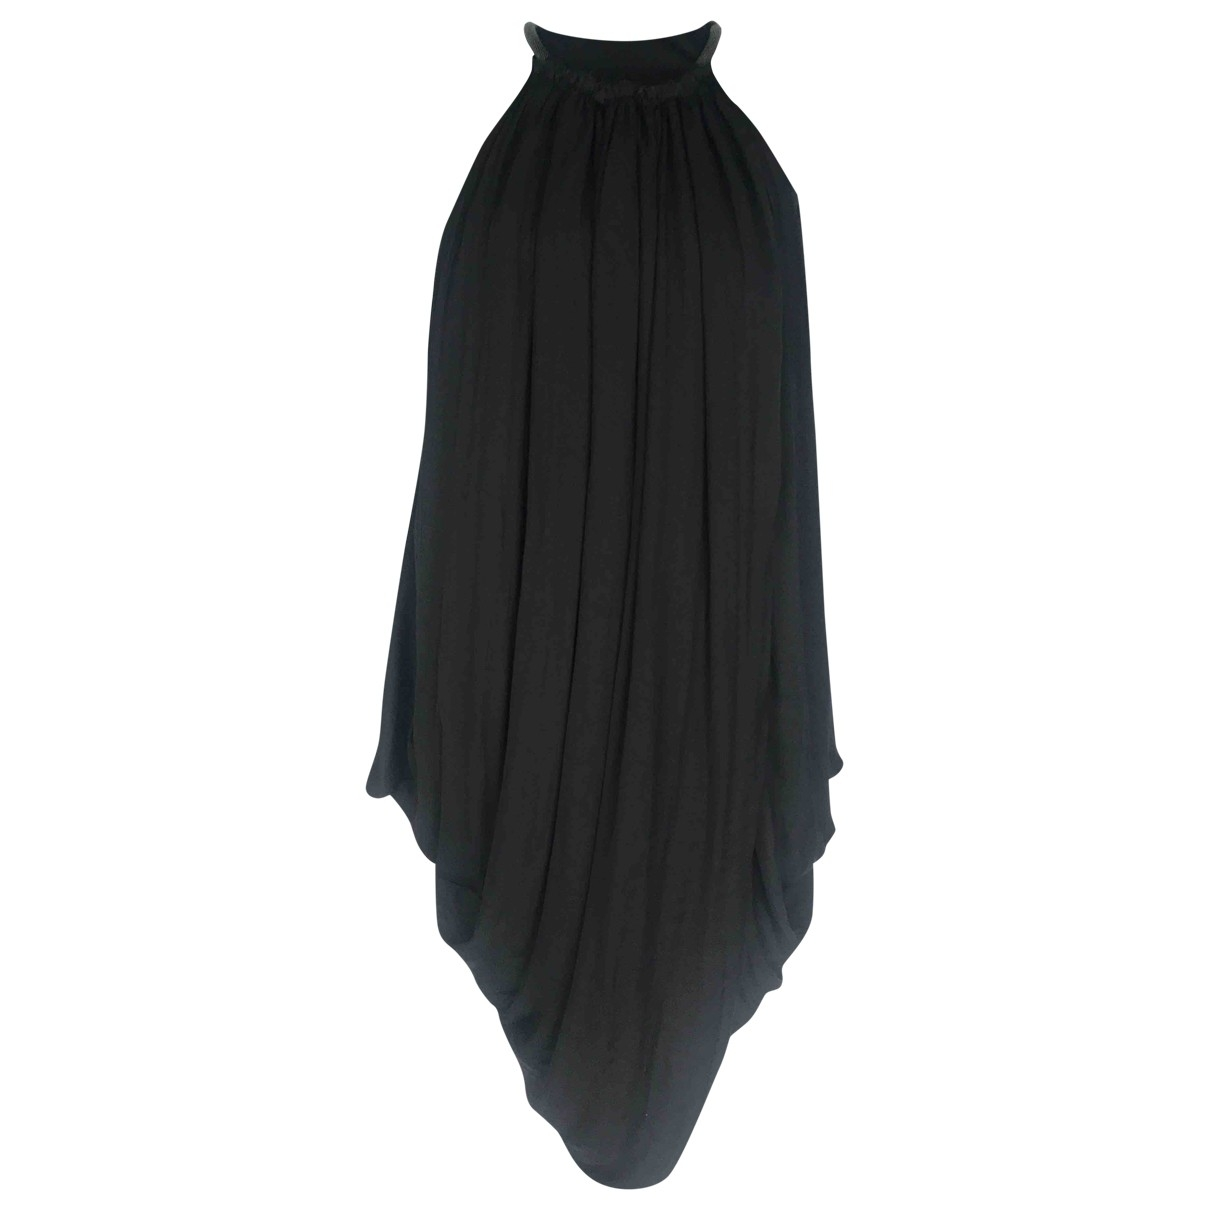 Lanvin \N Black dress for Women 38 FR